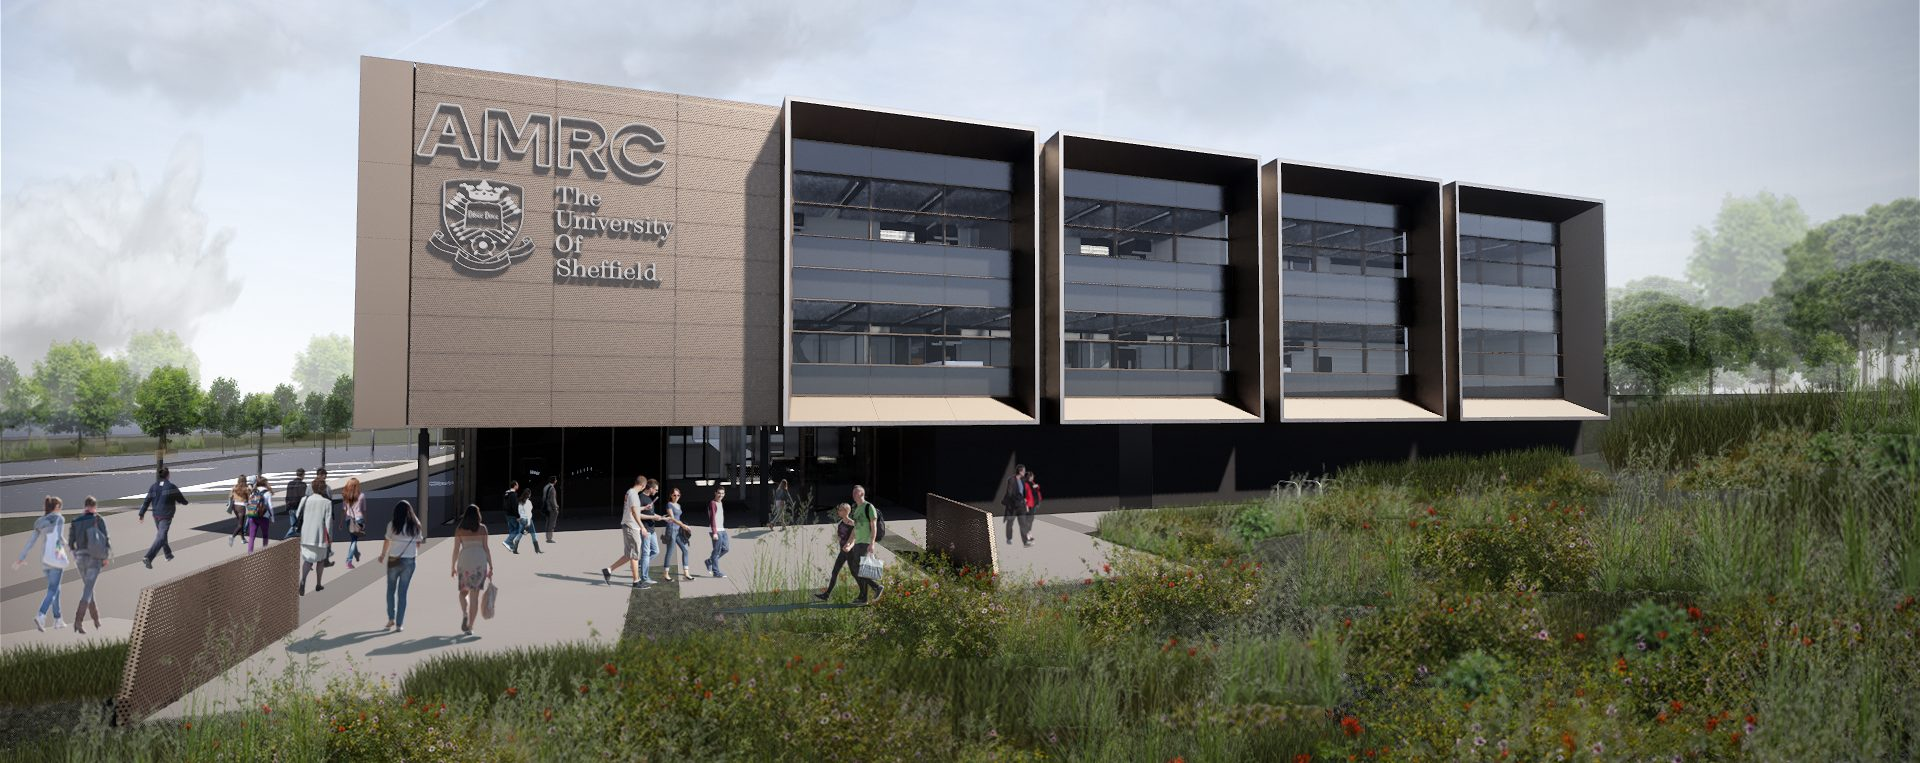 An artist impression of the University of Sheffield AMRC North West facility.